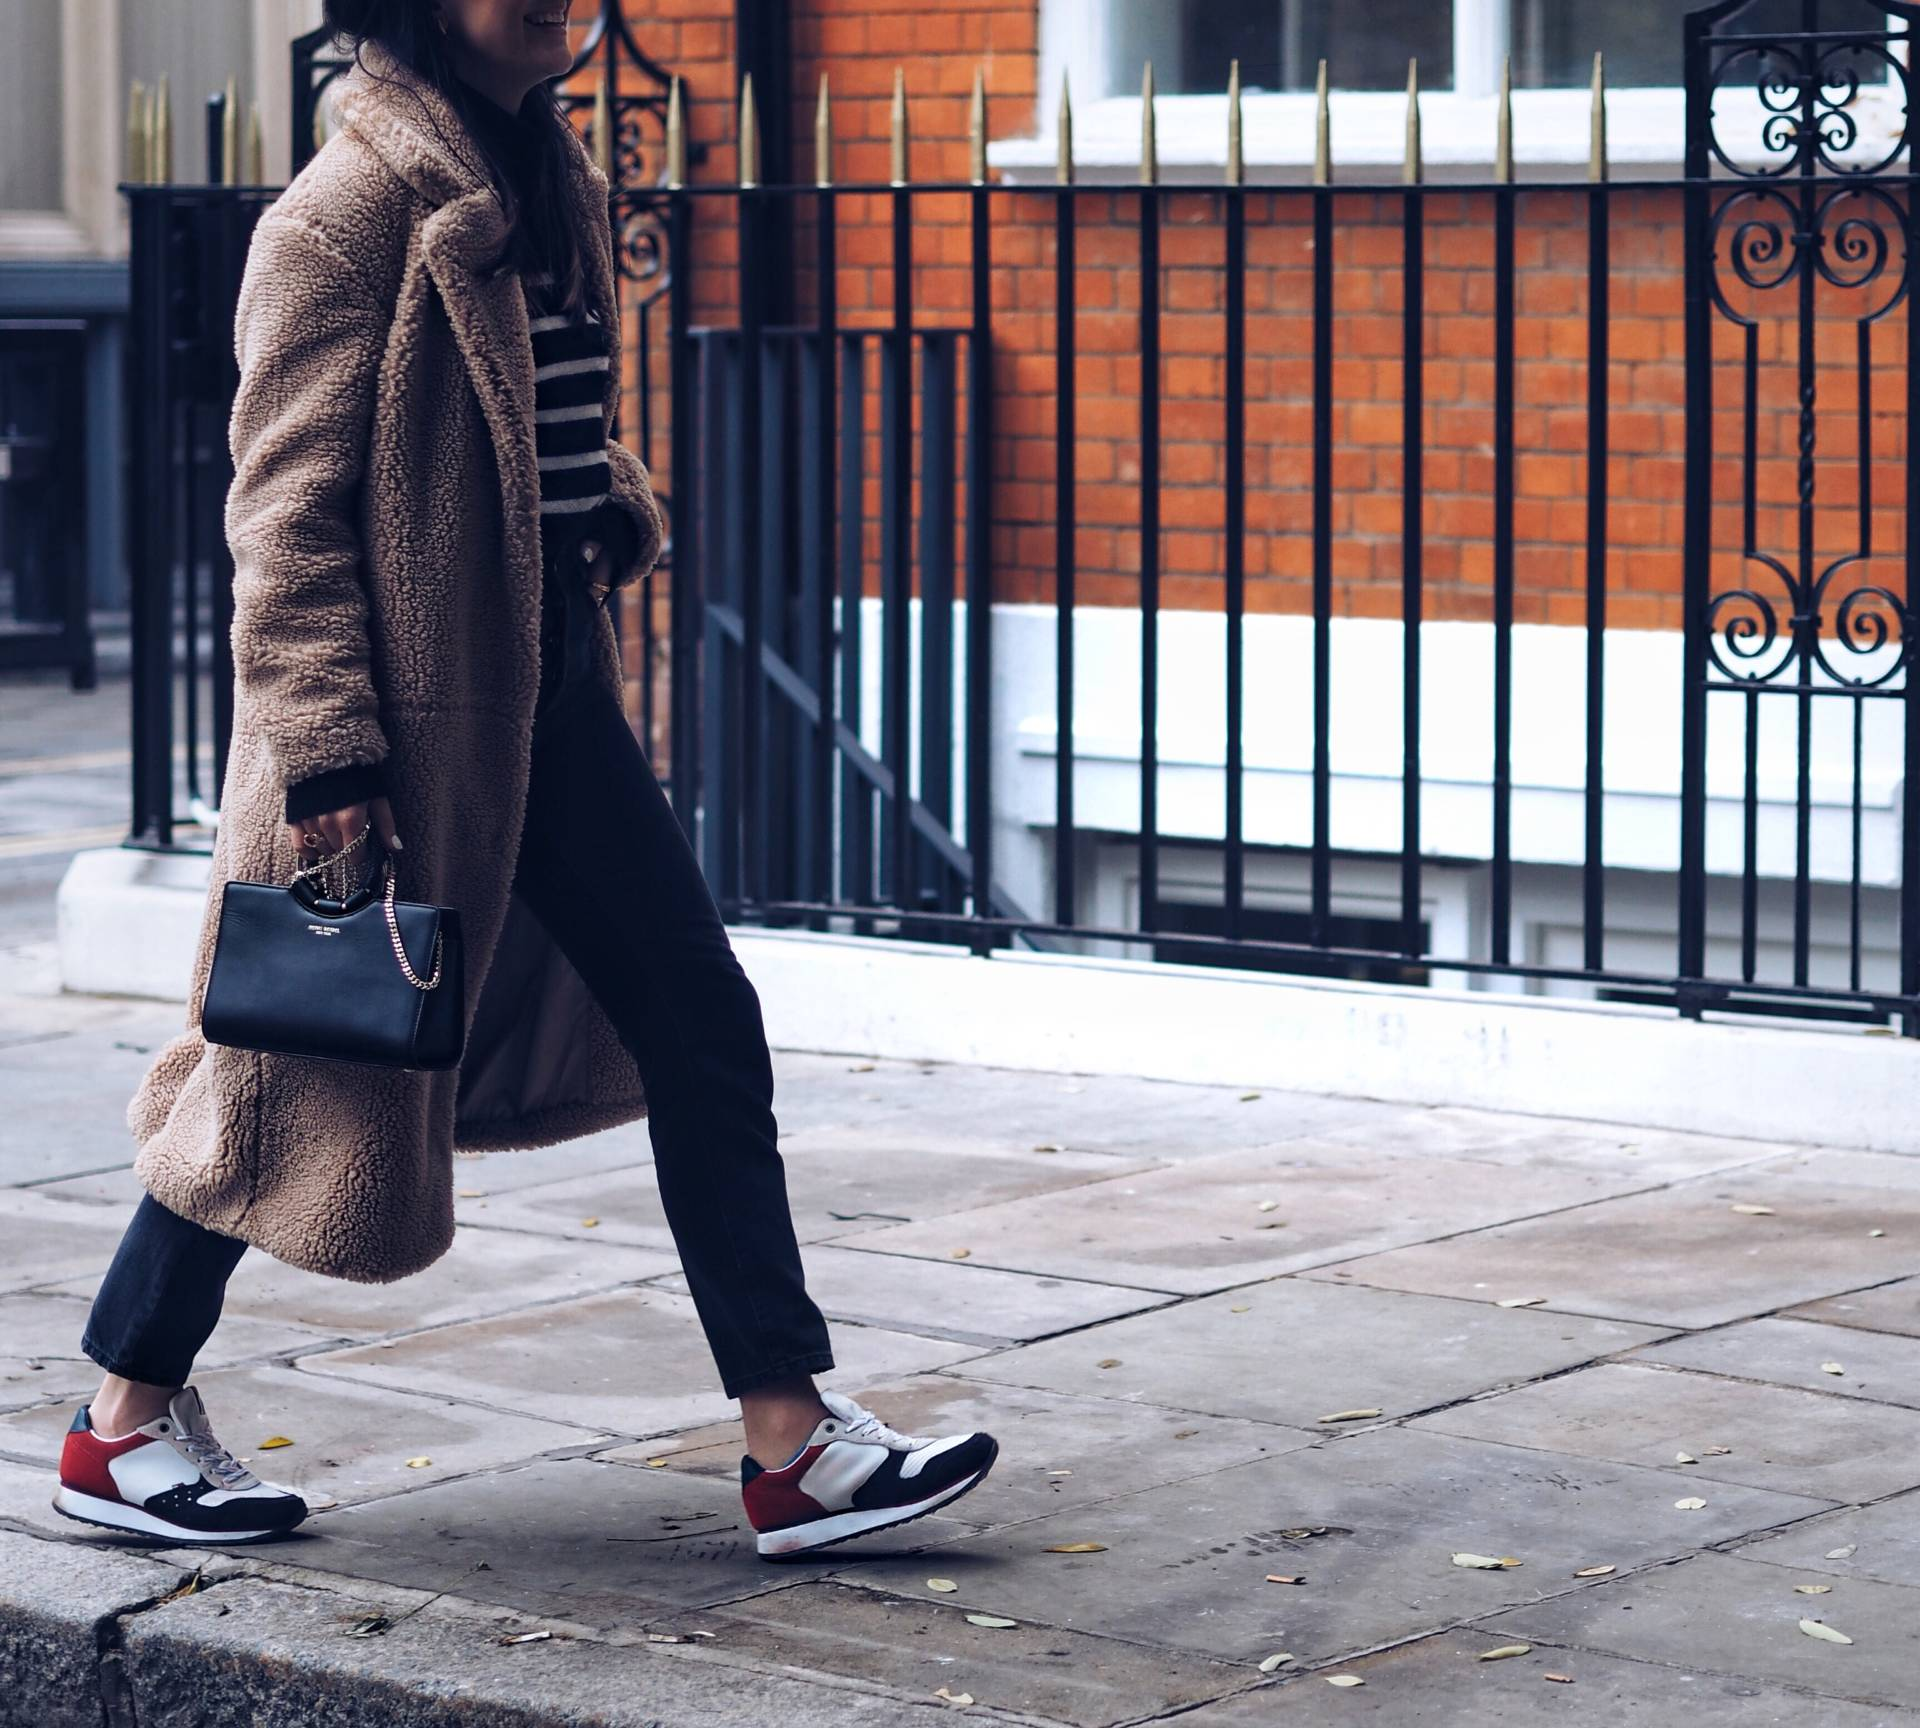 Teddy-pile-coat-street-style-London-fashion-blogger-lafotka